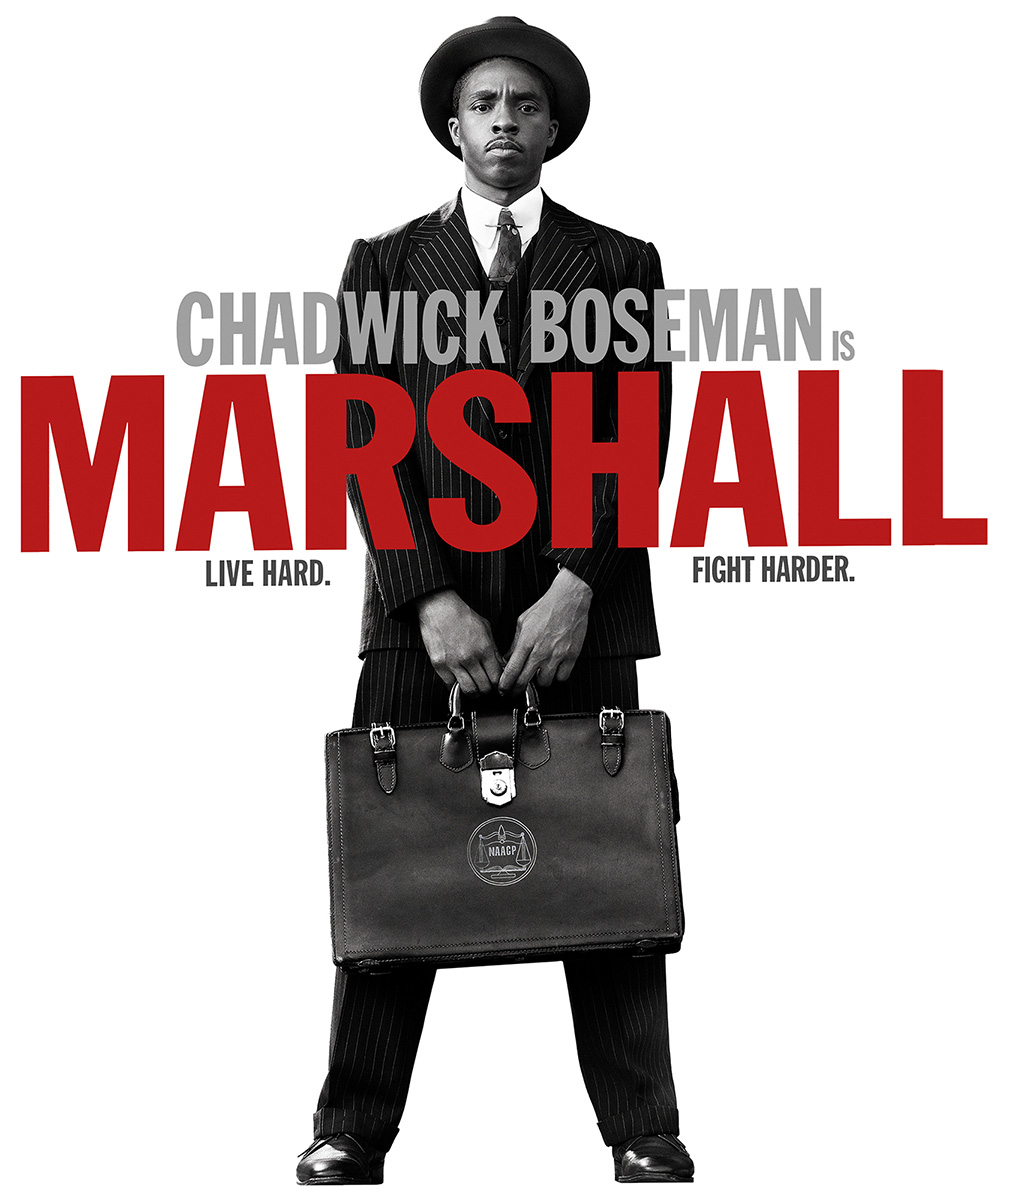 Marshall opened in the U.S. on Oct 13.